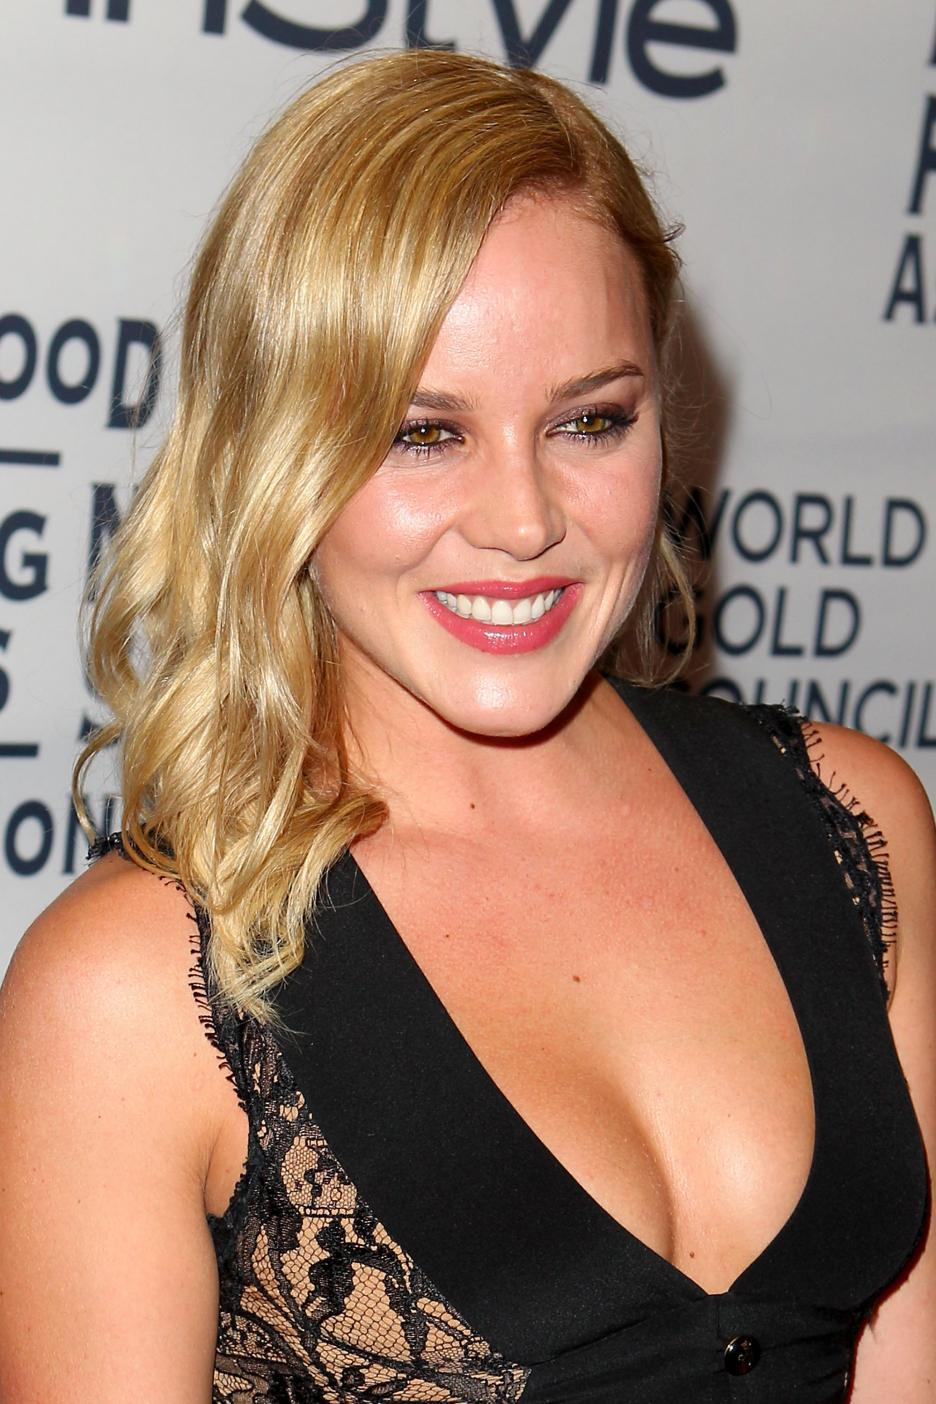 Abbie cornish nude compilation hd - 3 part 7